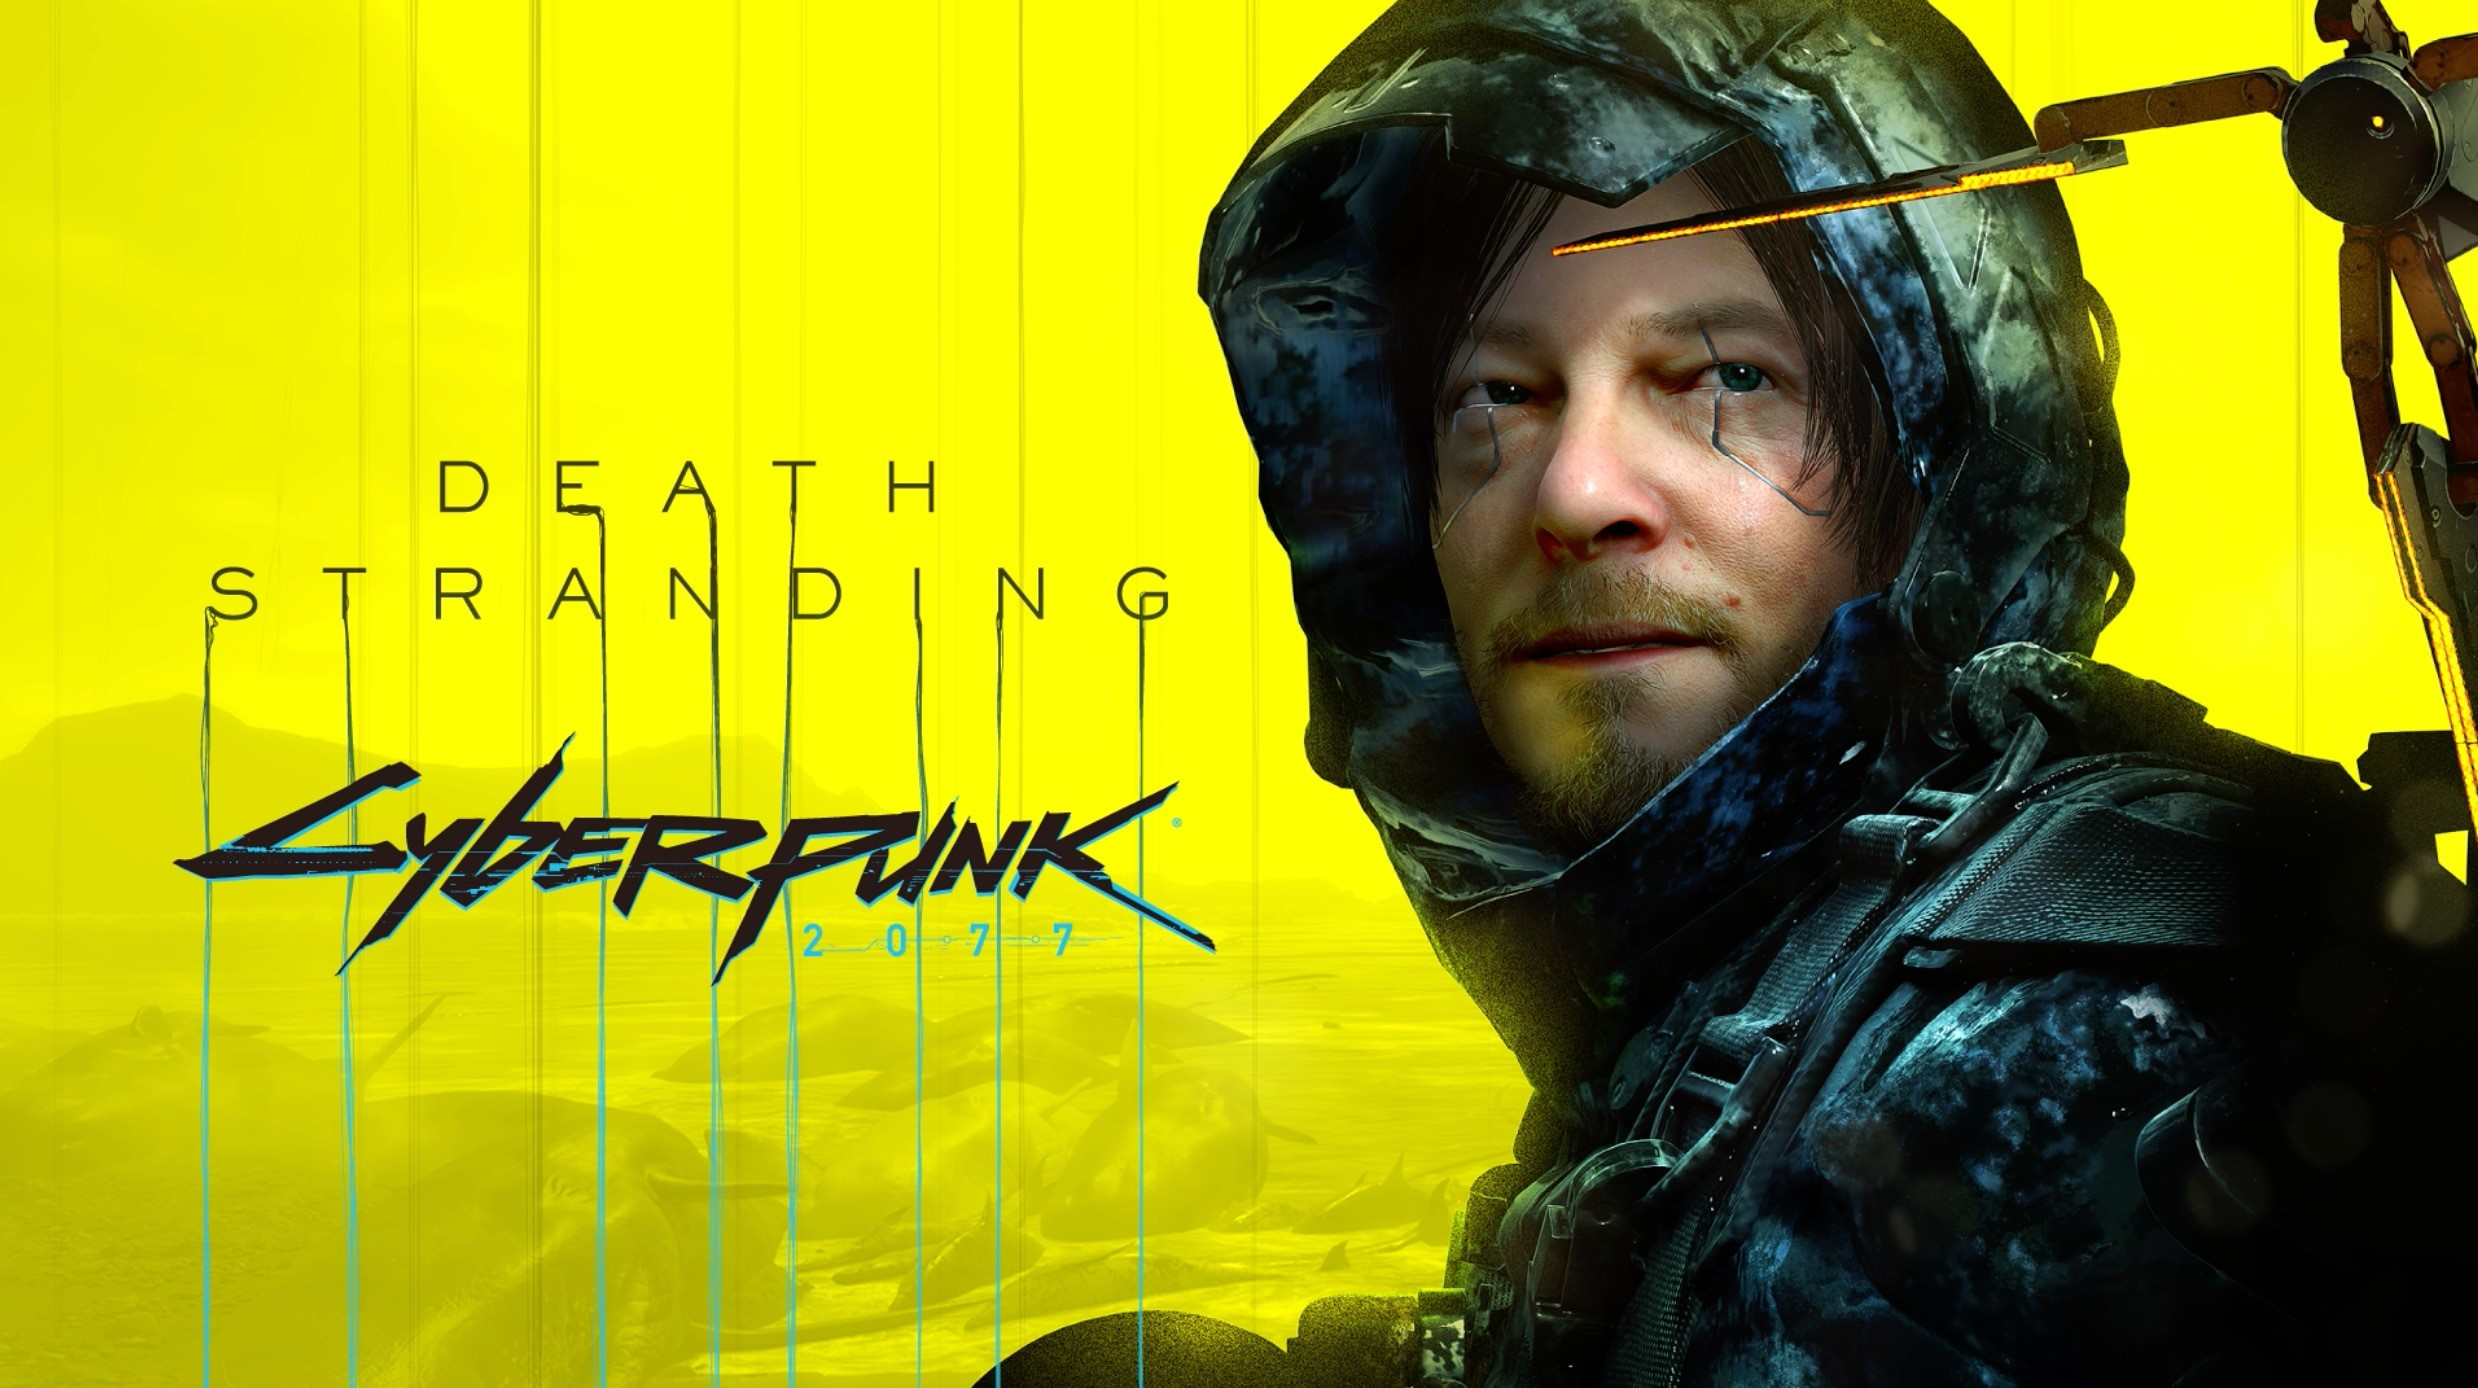 Introducing the DEATH STRANDING x Cyberpunk 2077 free update, OUT NOW on PC